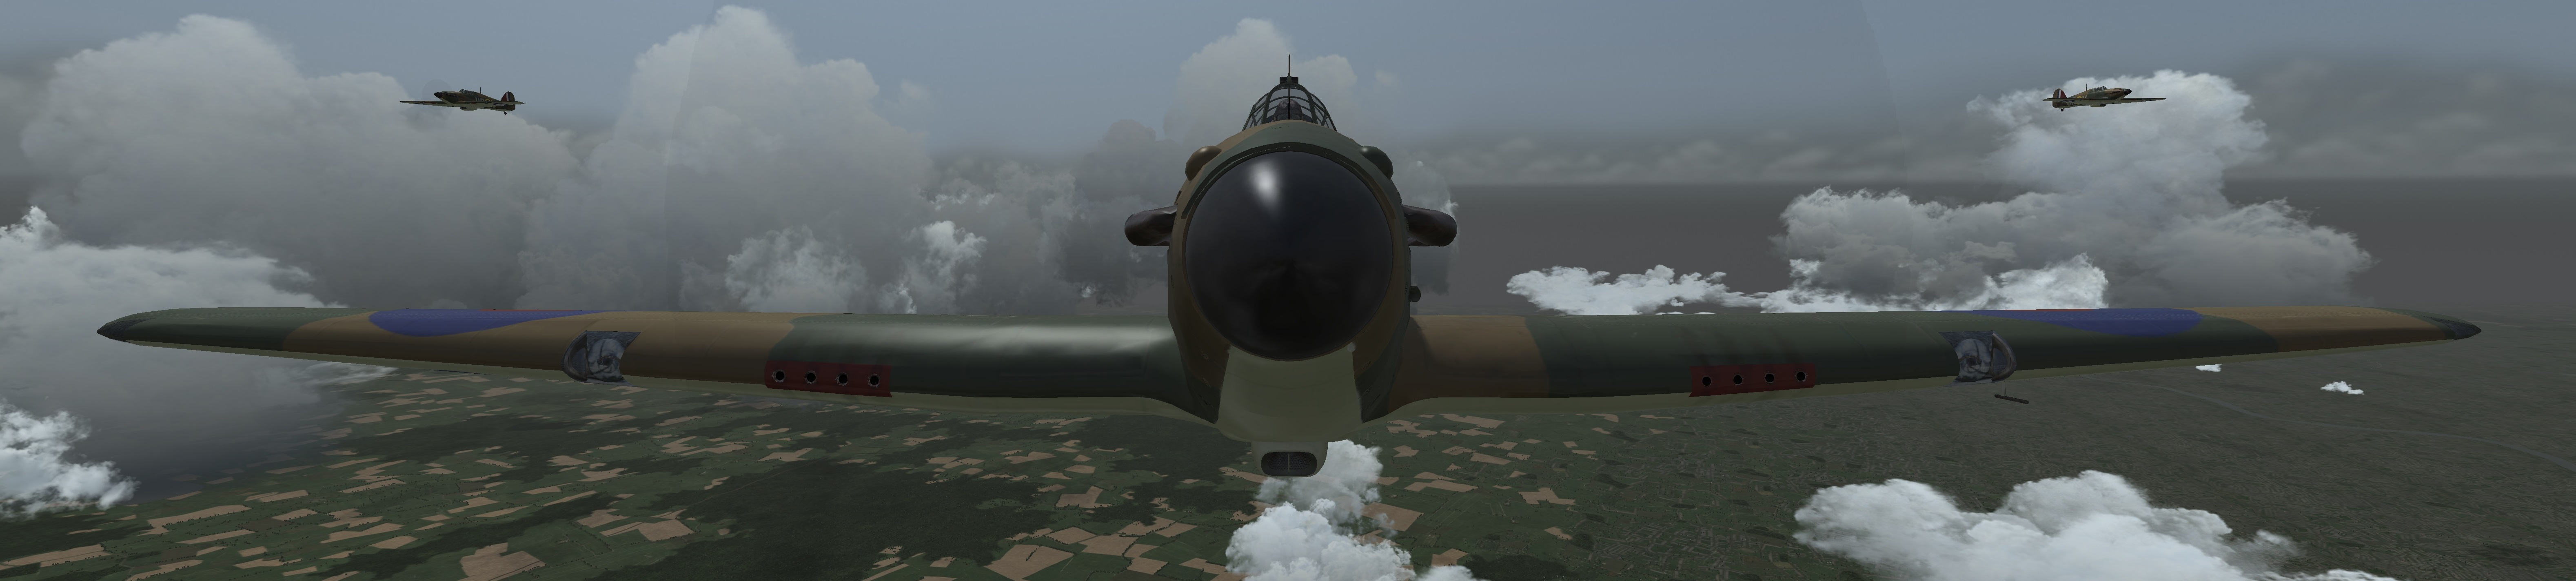 Combat Flight Simulator 3 Screenshot 2018.10.27 - 09.25.52.20.jpg